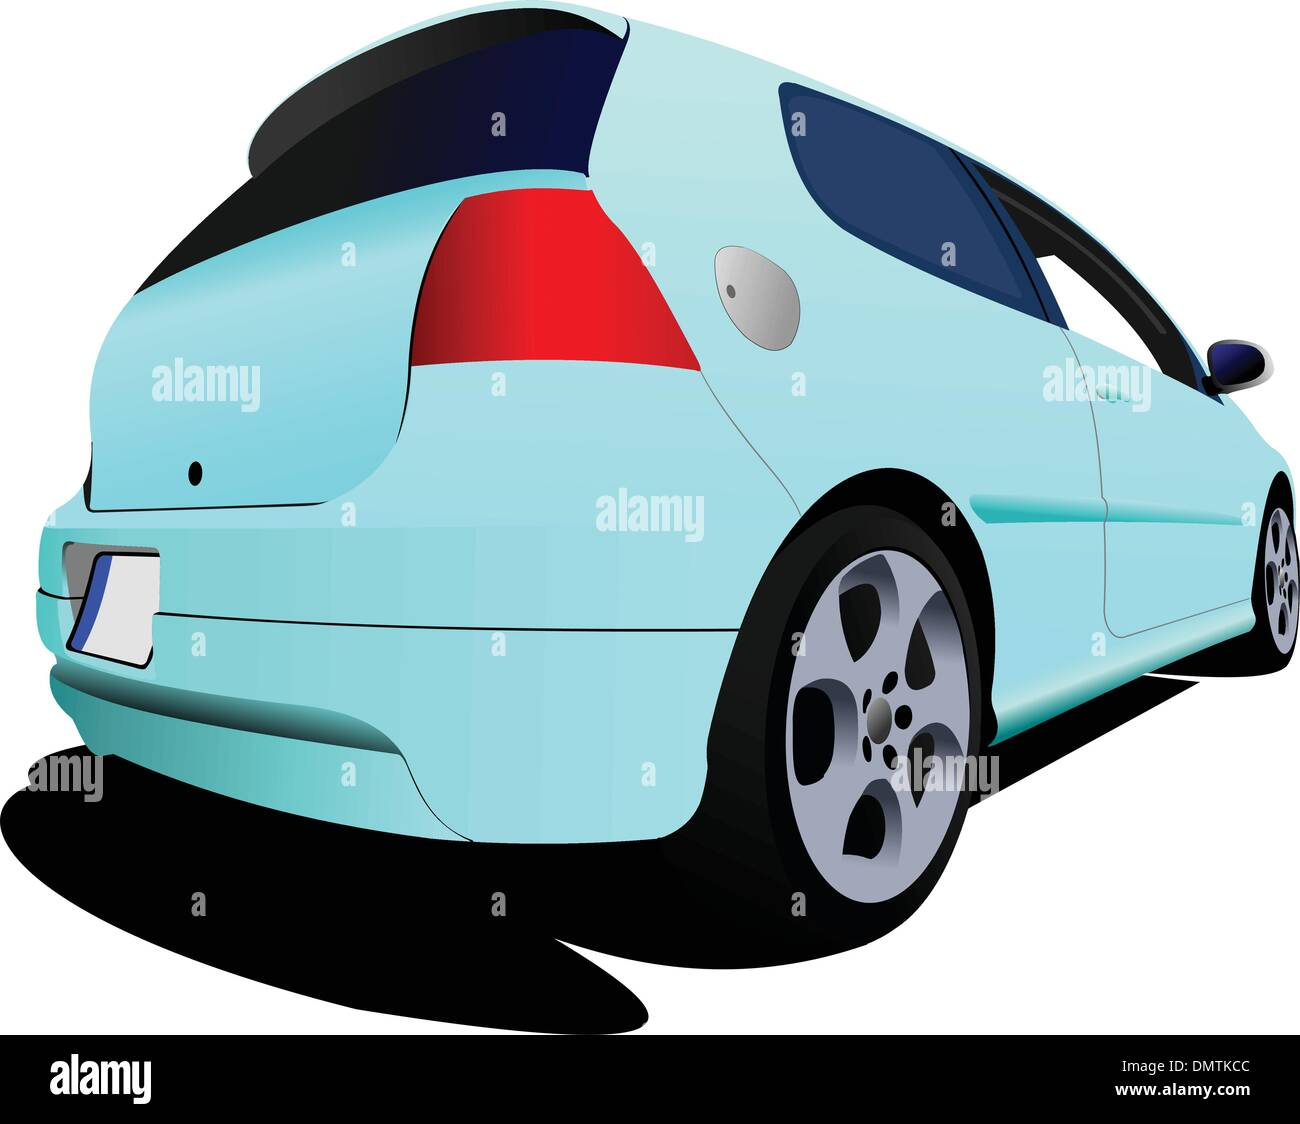 3-doors light blue hatchback car on the road. Vector illustratio - Stock Image